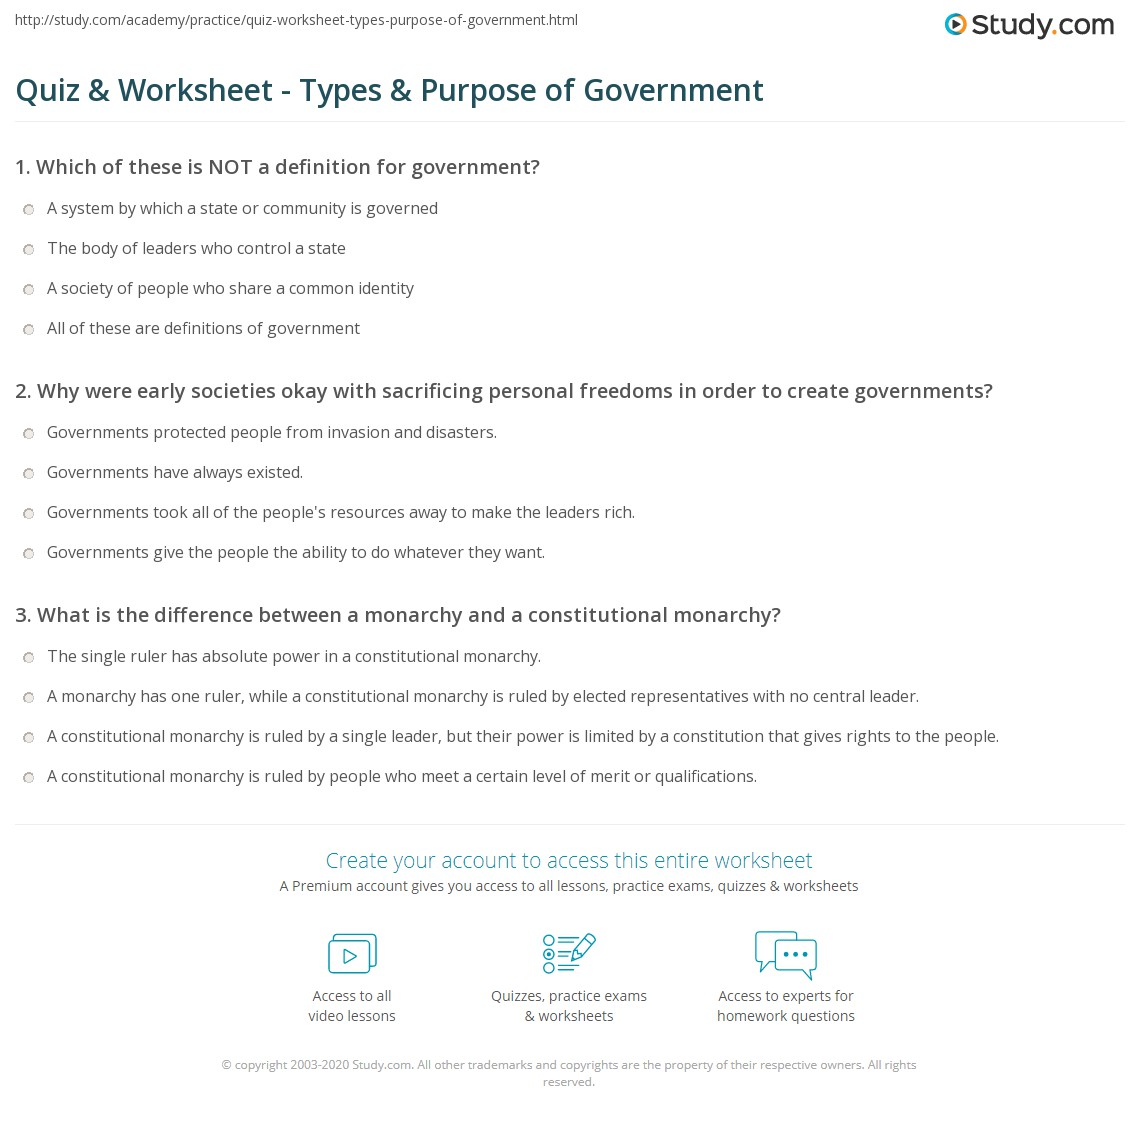 Workbooks types of government worksheets : Quiz & Worksheet - Types & Purpose of Government | Study.com